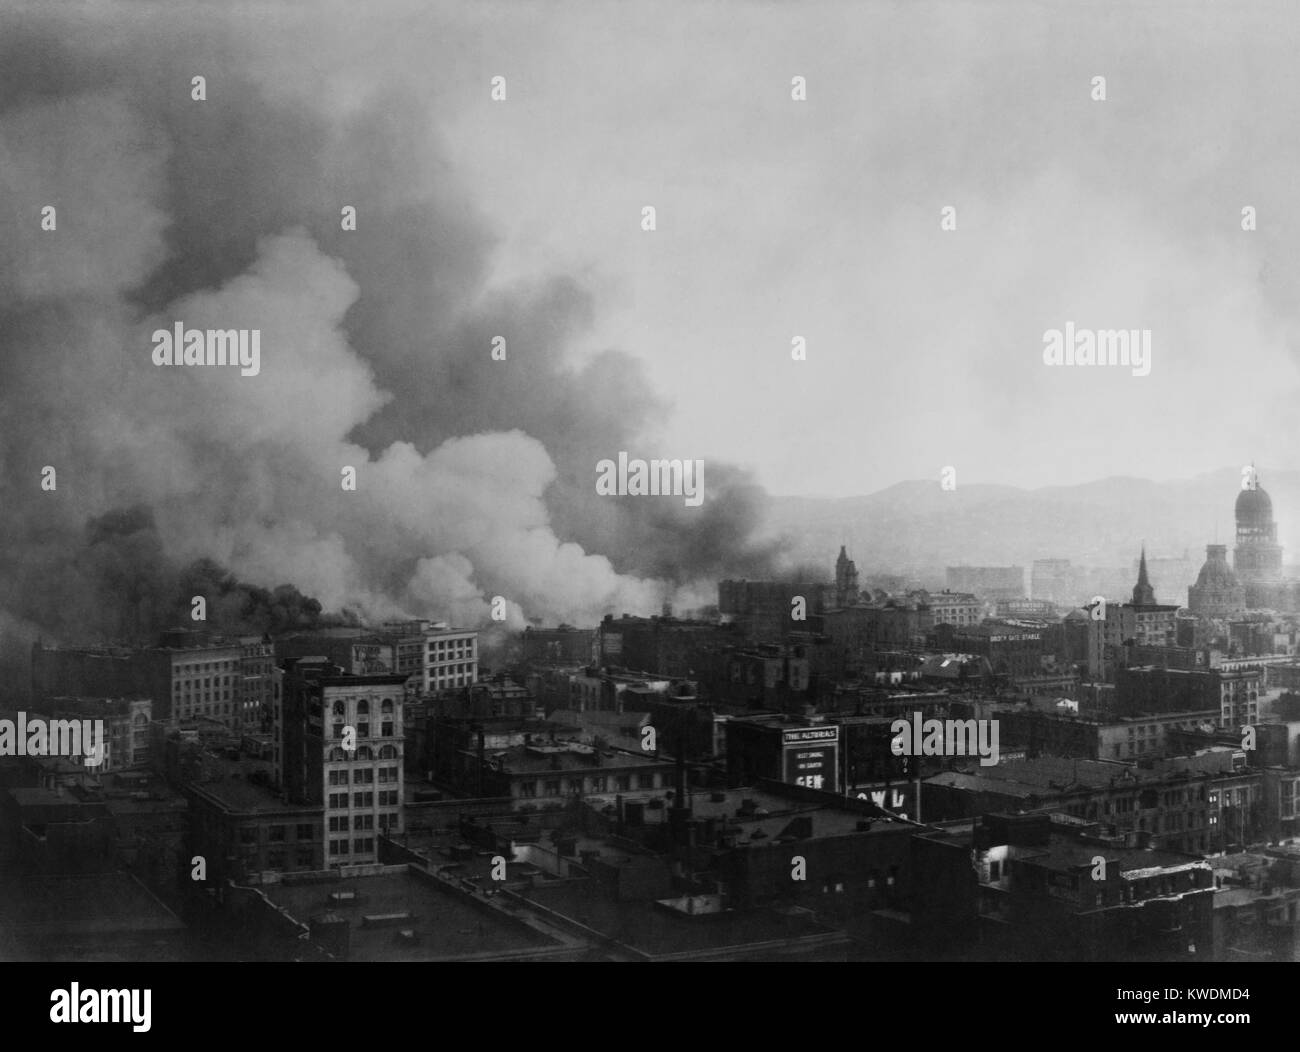 Smoke billowing over San Francisco, after April 18, 1906 earthquake. View from Stock Exchange building at the beginning - Stock Image